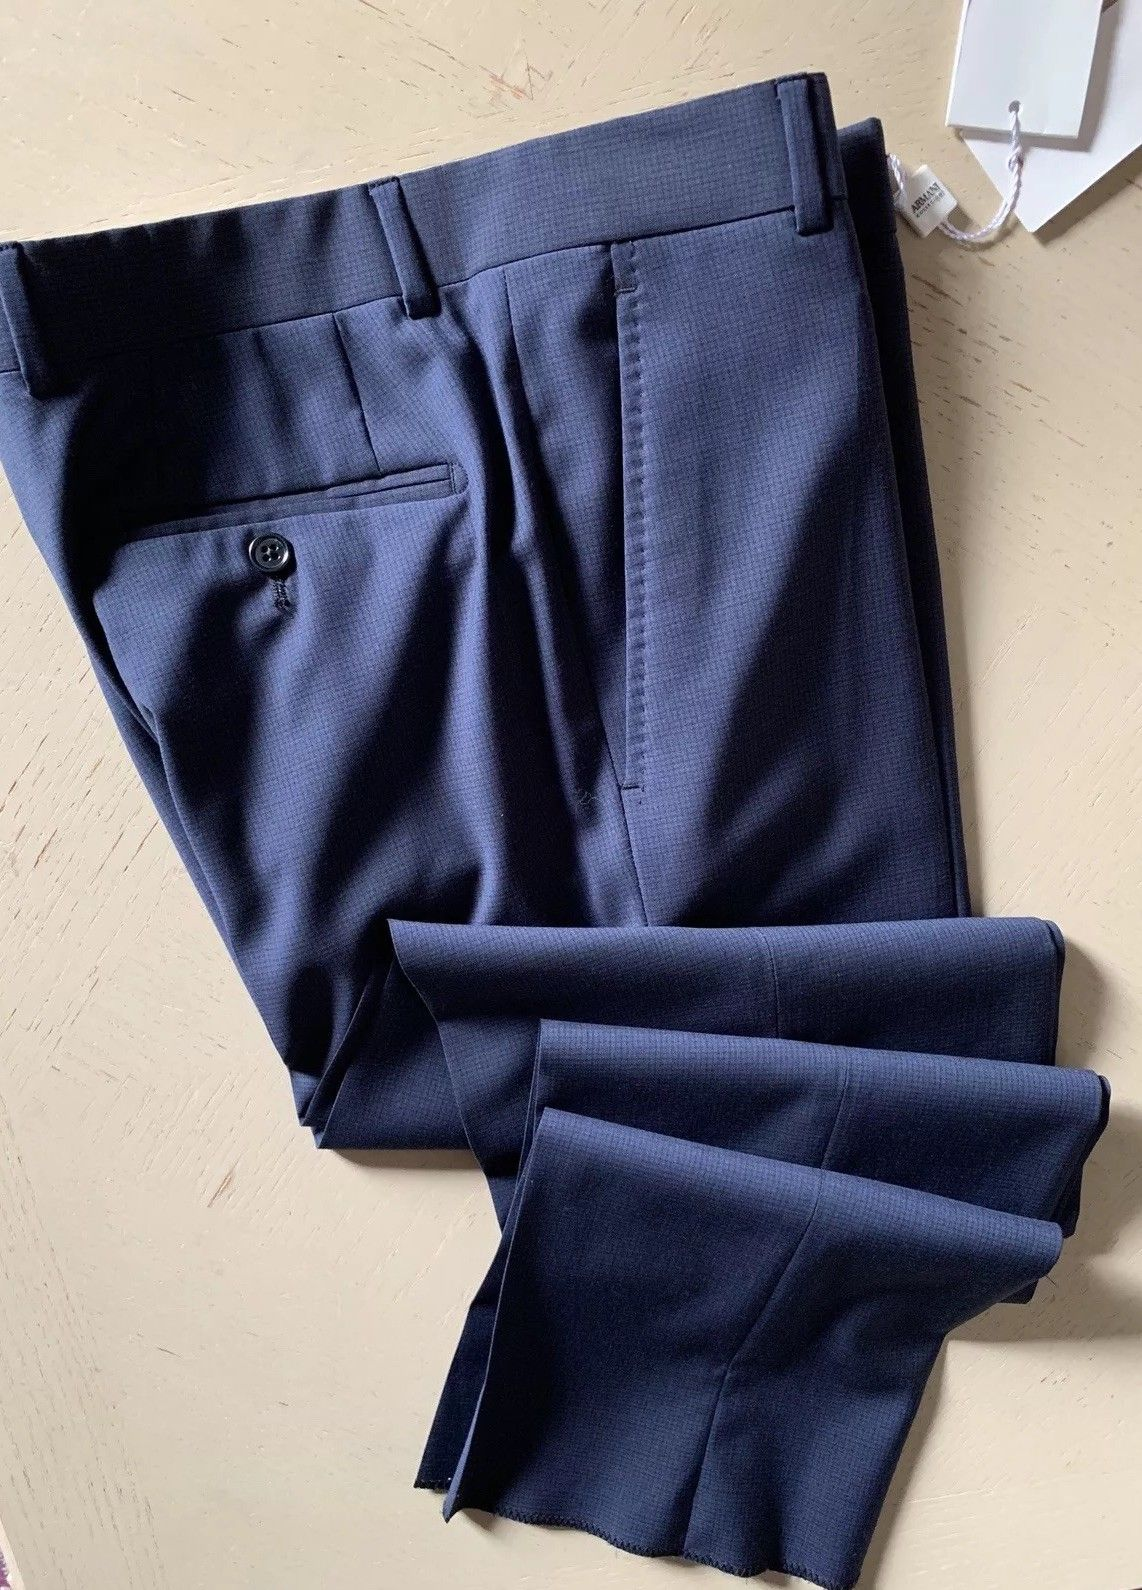 New $450 Armani Collezioni Men's Pants Blue 28 US ( 44 Eu )